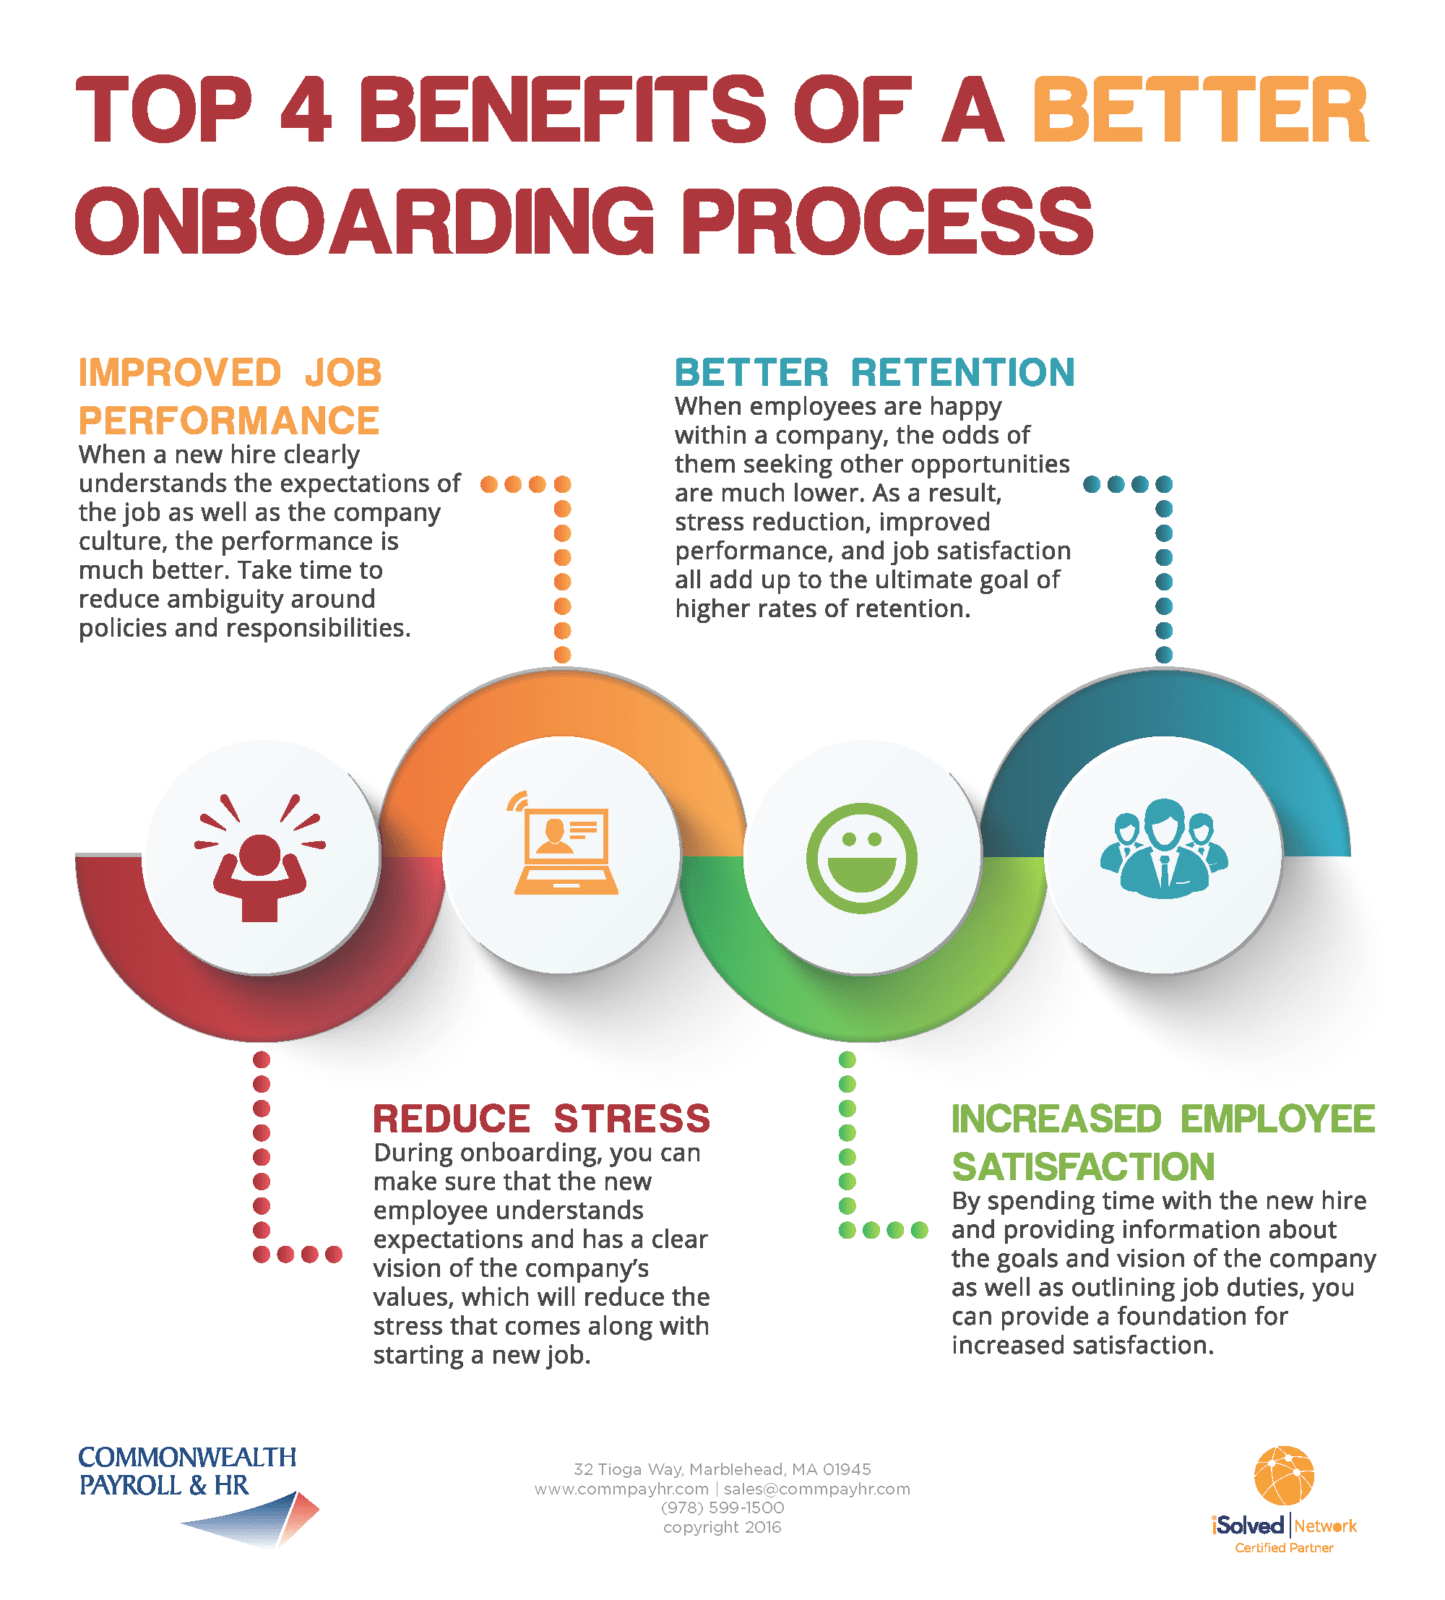 Top 4 Benefits of a Better Onboarding Process_Commonwealth